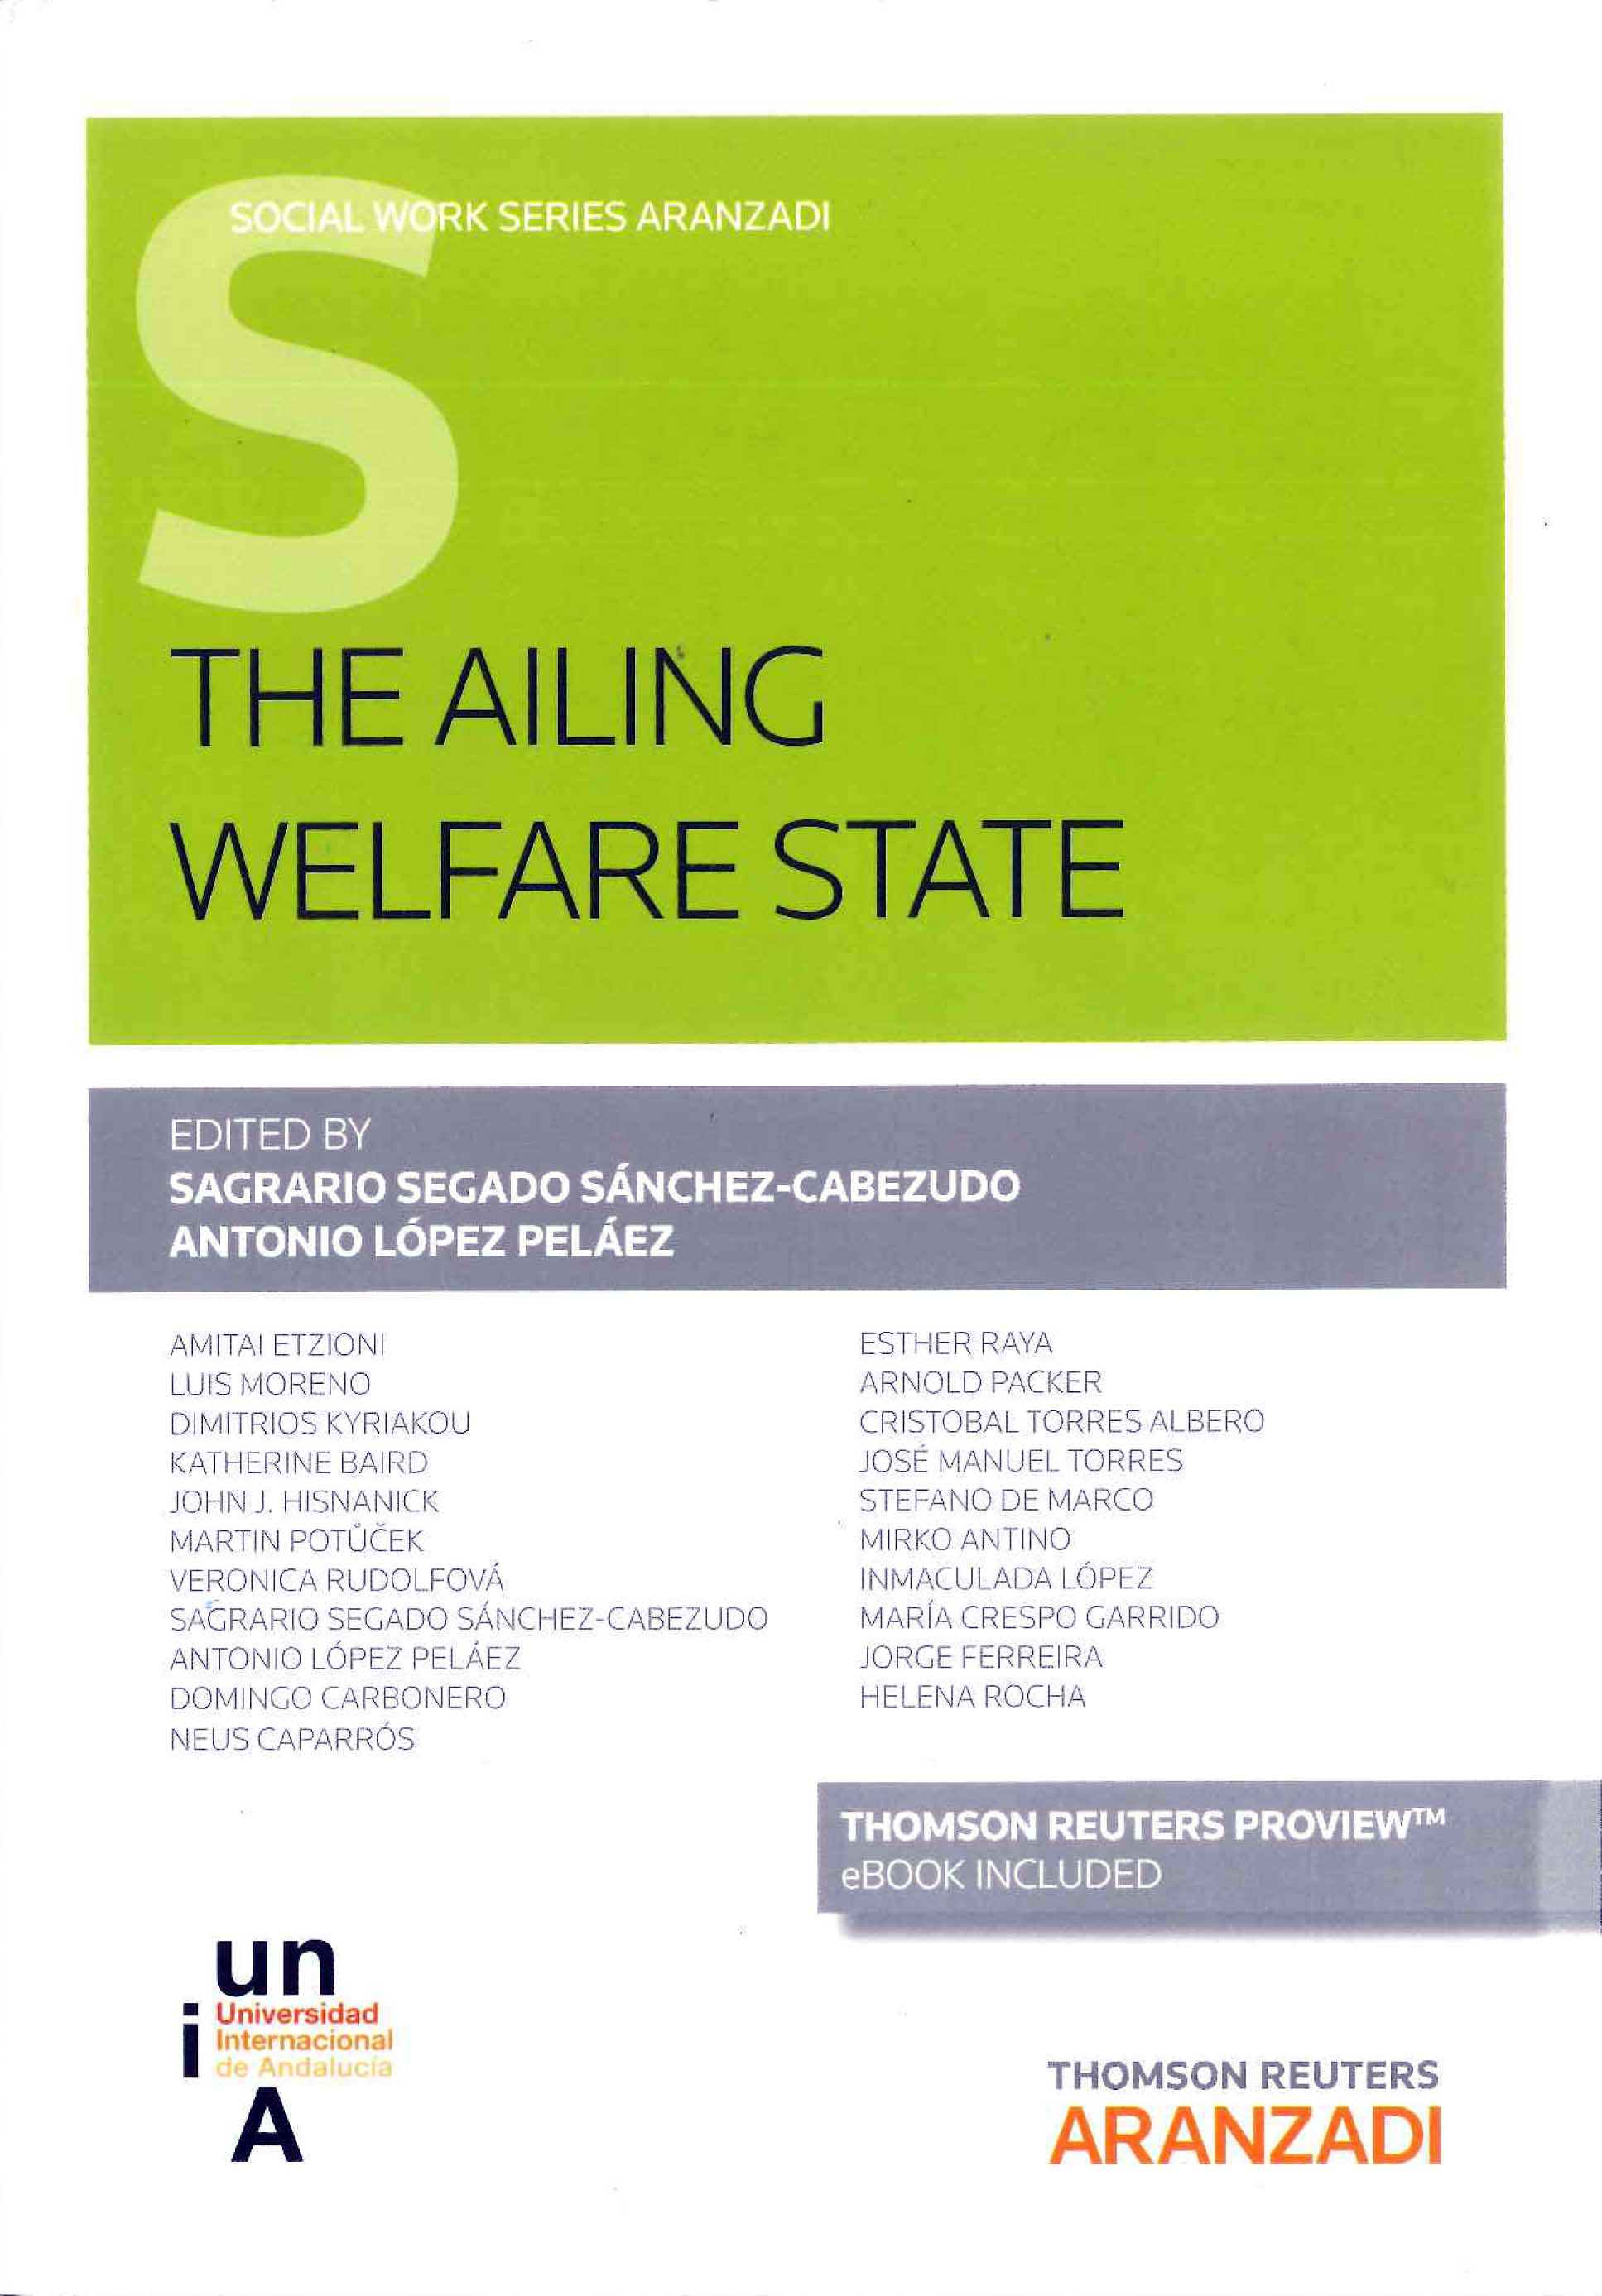 The Ailing Welfare State